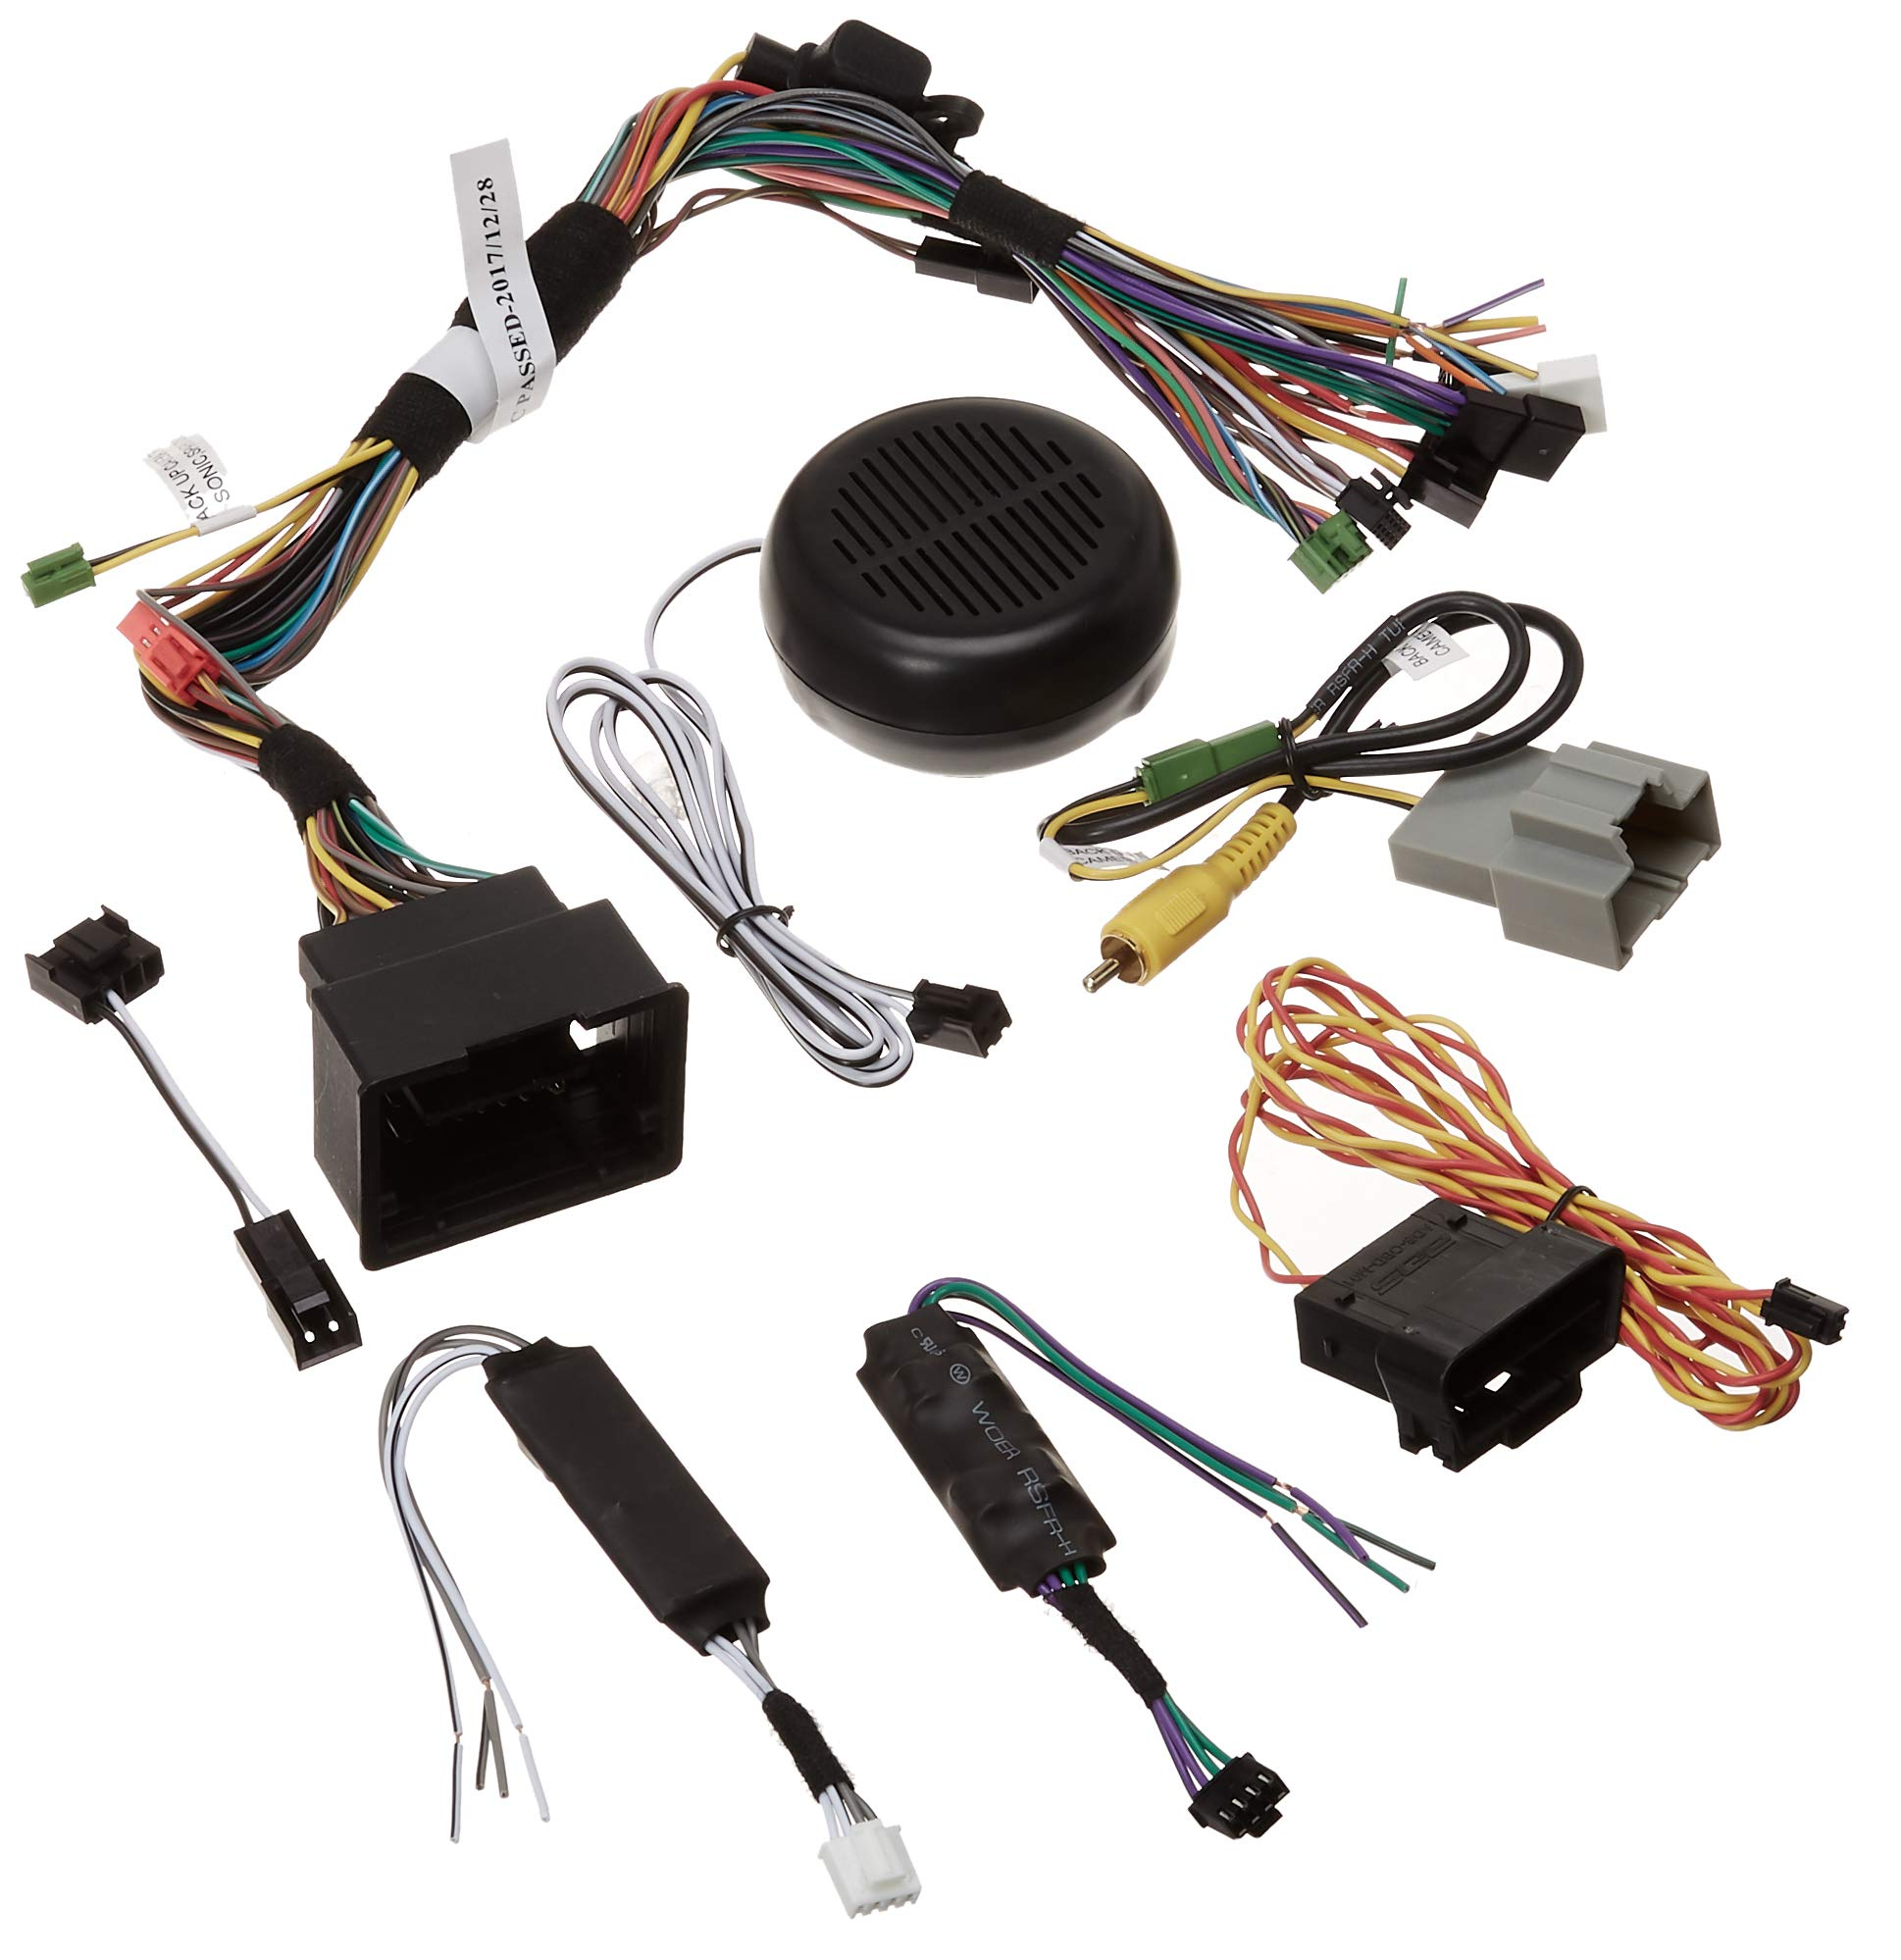 Maestro HRN-RR-GM2 Plug and Play T-Harness for GM2 and GM5 Vehicles, with Speaker by Maestro